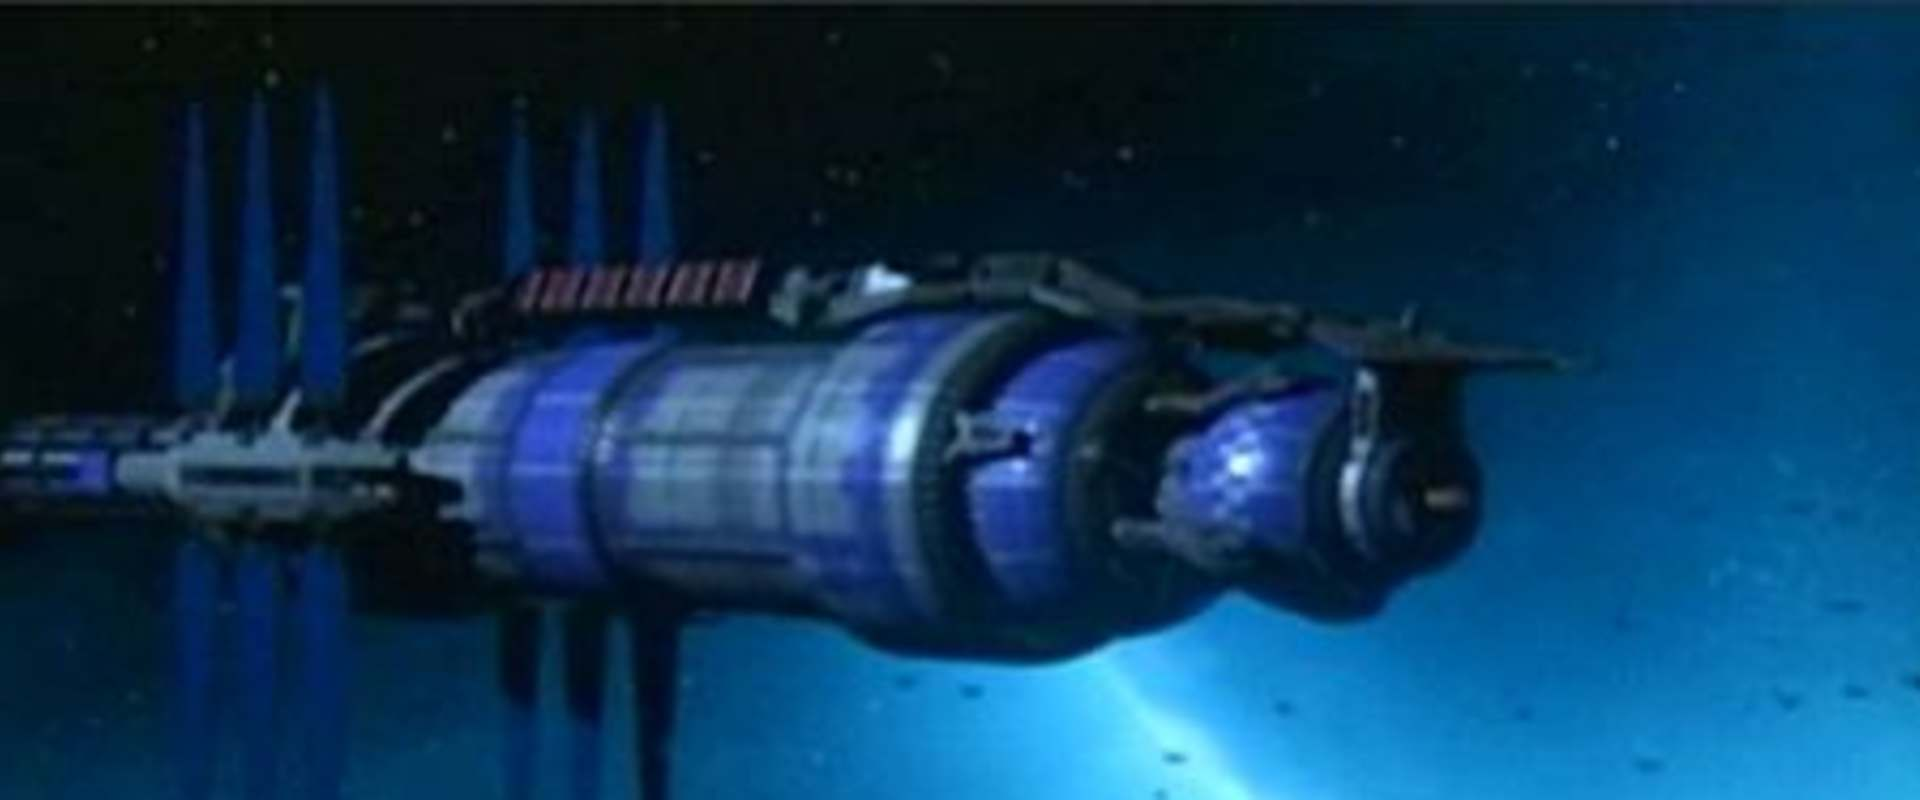 Babylon 5: The Legend of the Rangers: To Live and Die in Starlight background 1